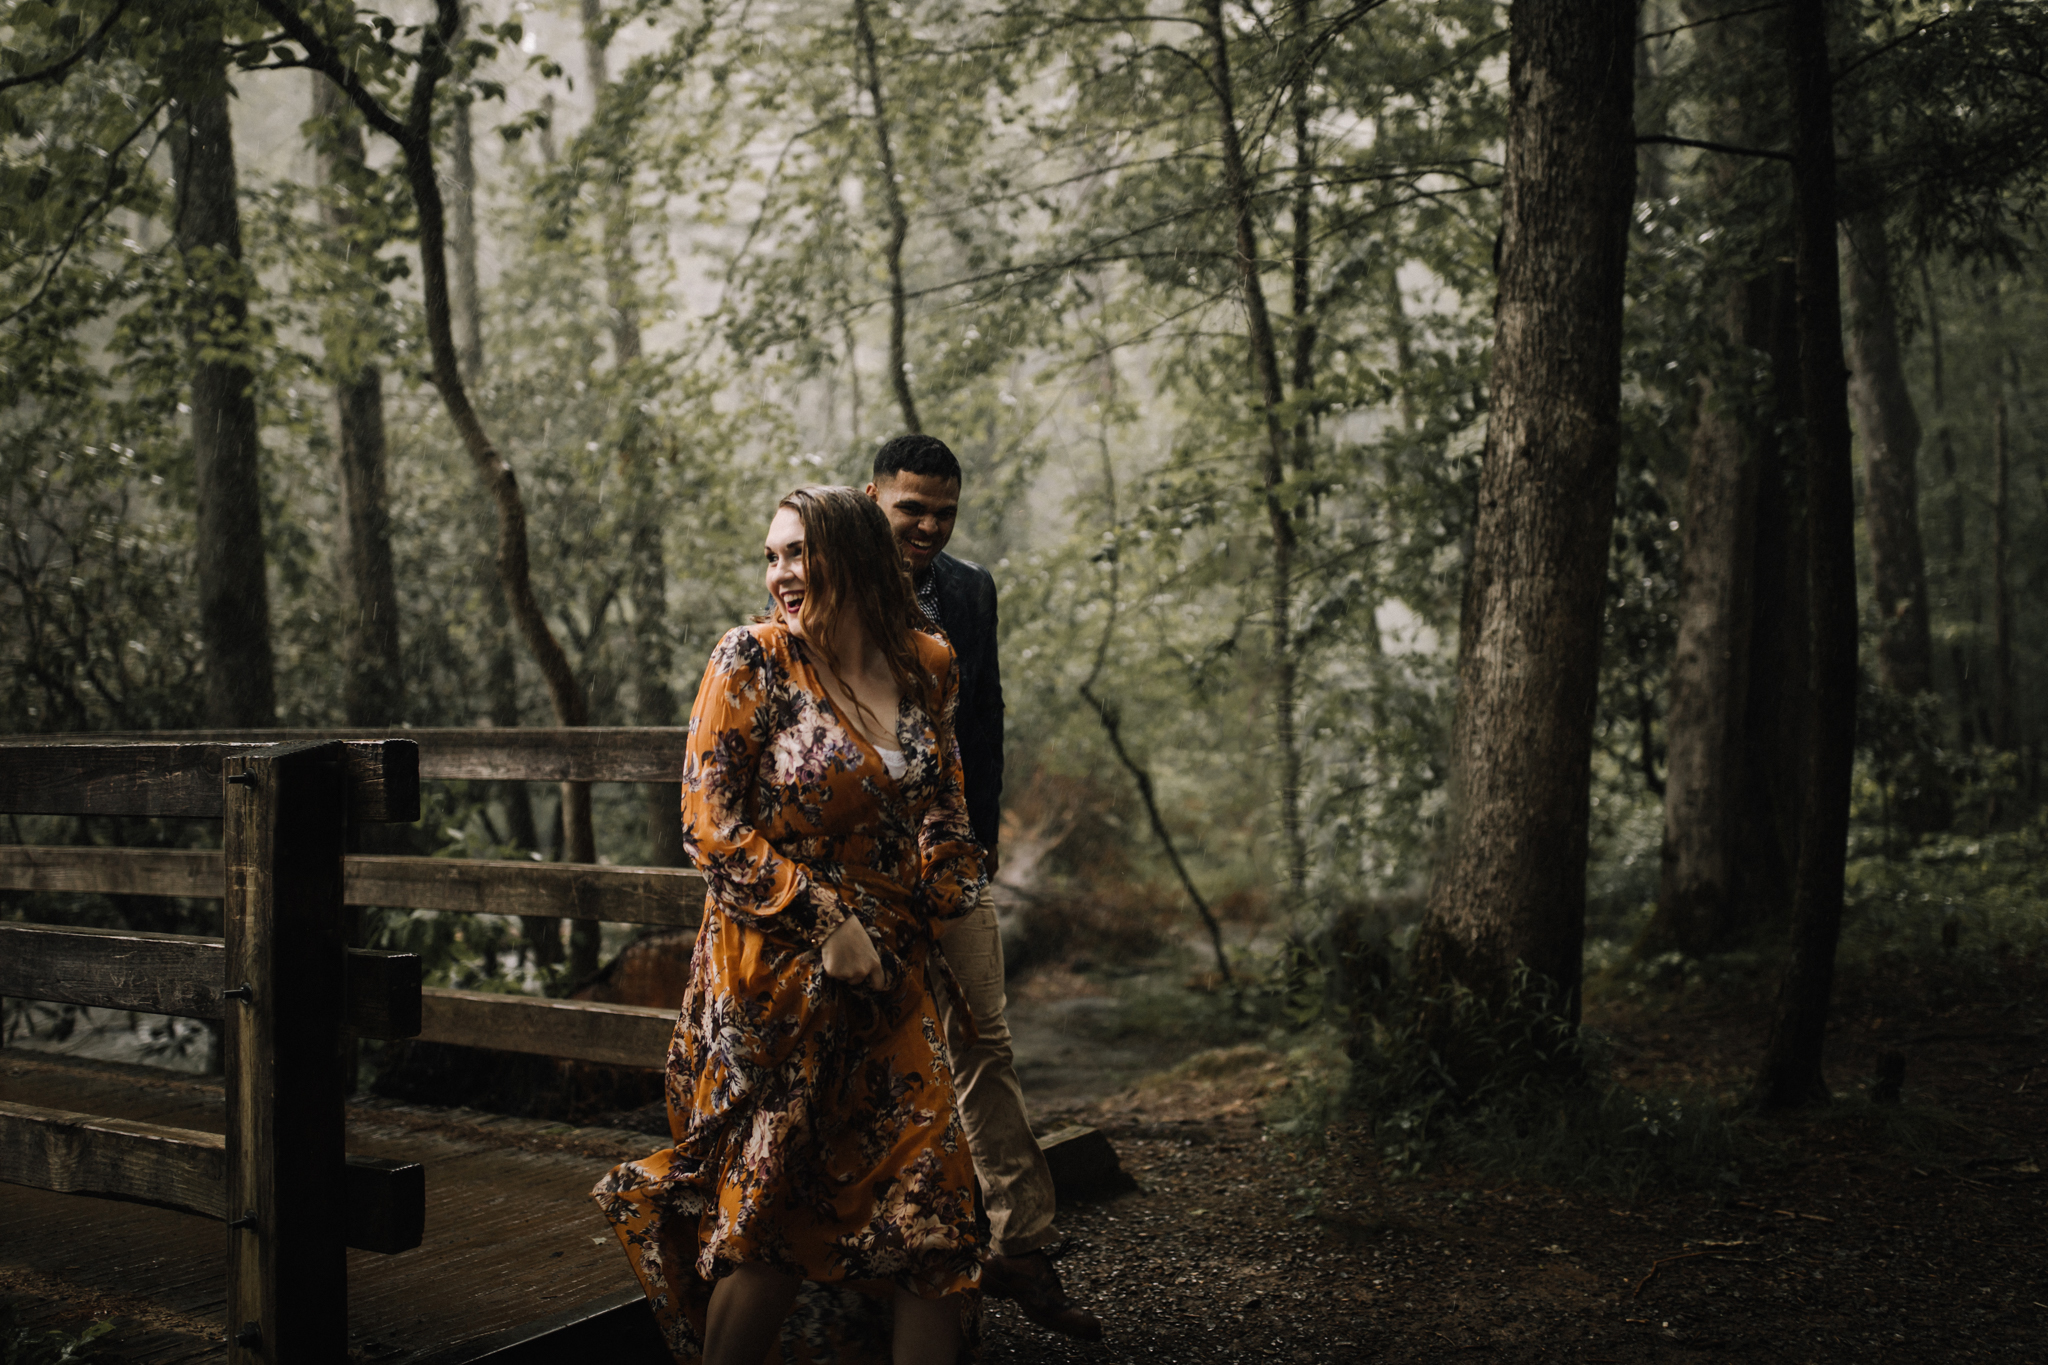 billie-shaye style photography - www.billieshayestyle.com - smokey mountain cades cove summer rain engagement session - gatlinburg tennessee-0490.jpg